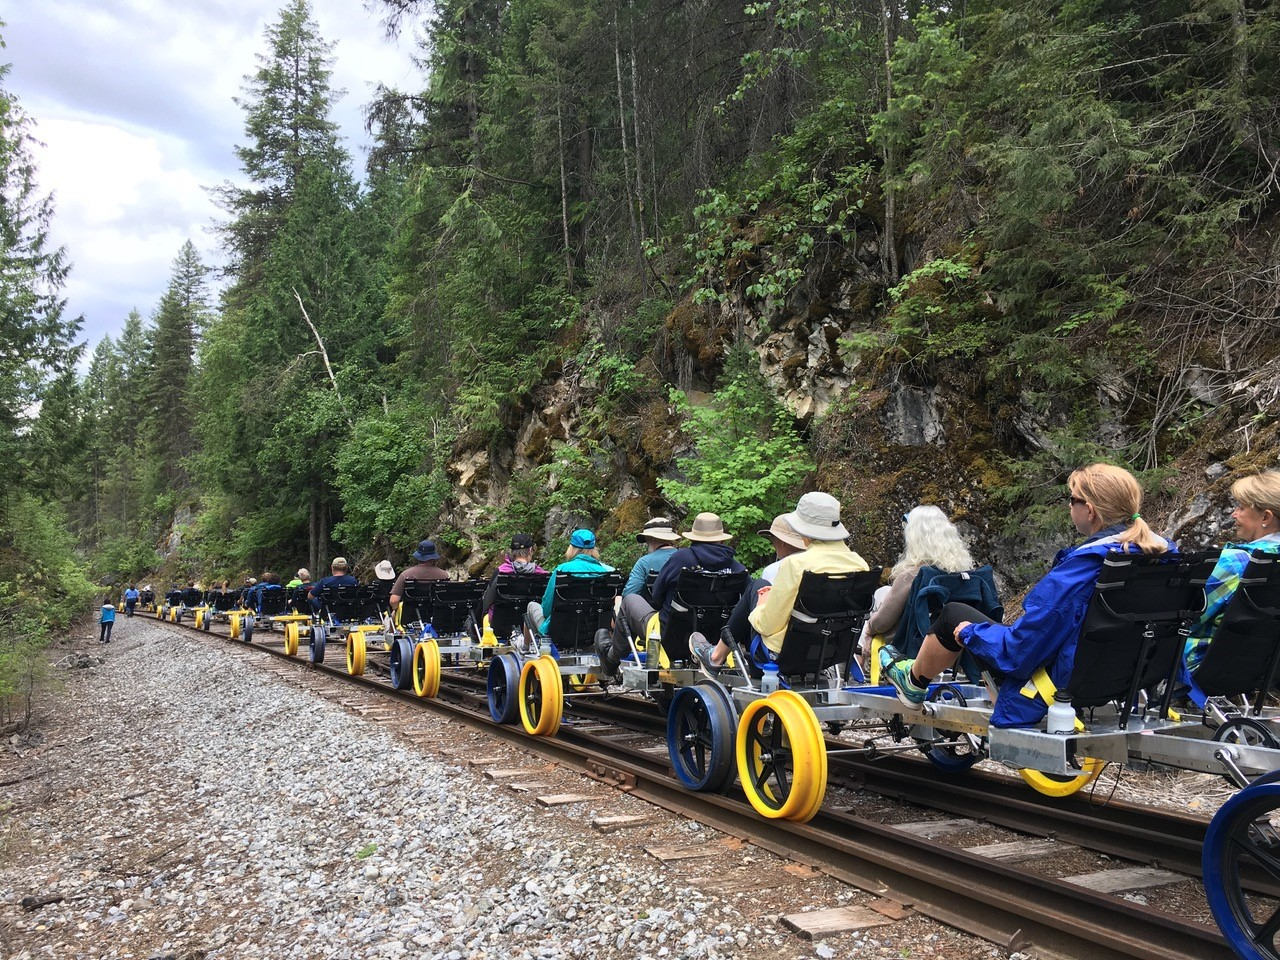 365 Things to Do in Washington State | NPOV Lions Club Railriders